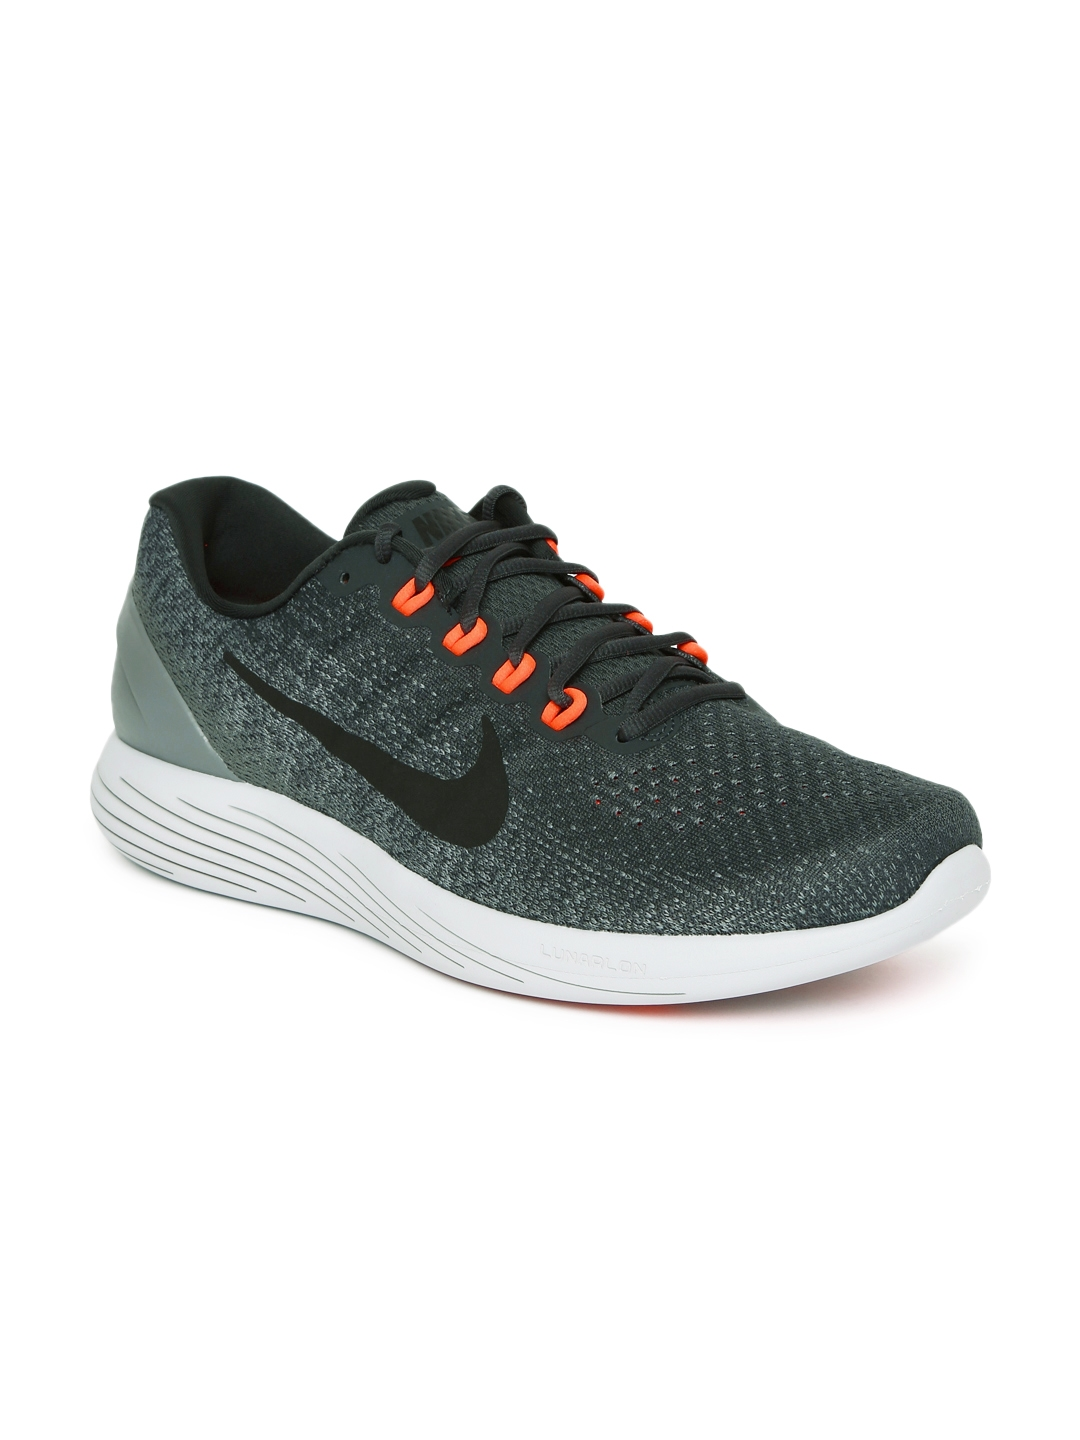 finest selection 09a87 a03fd Nike Men Charcoal Grey LUNARGLIDE 9 Running Shoes